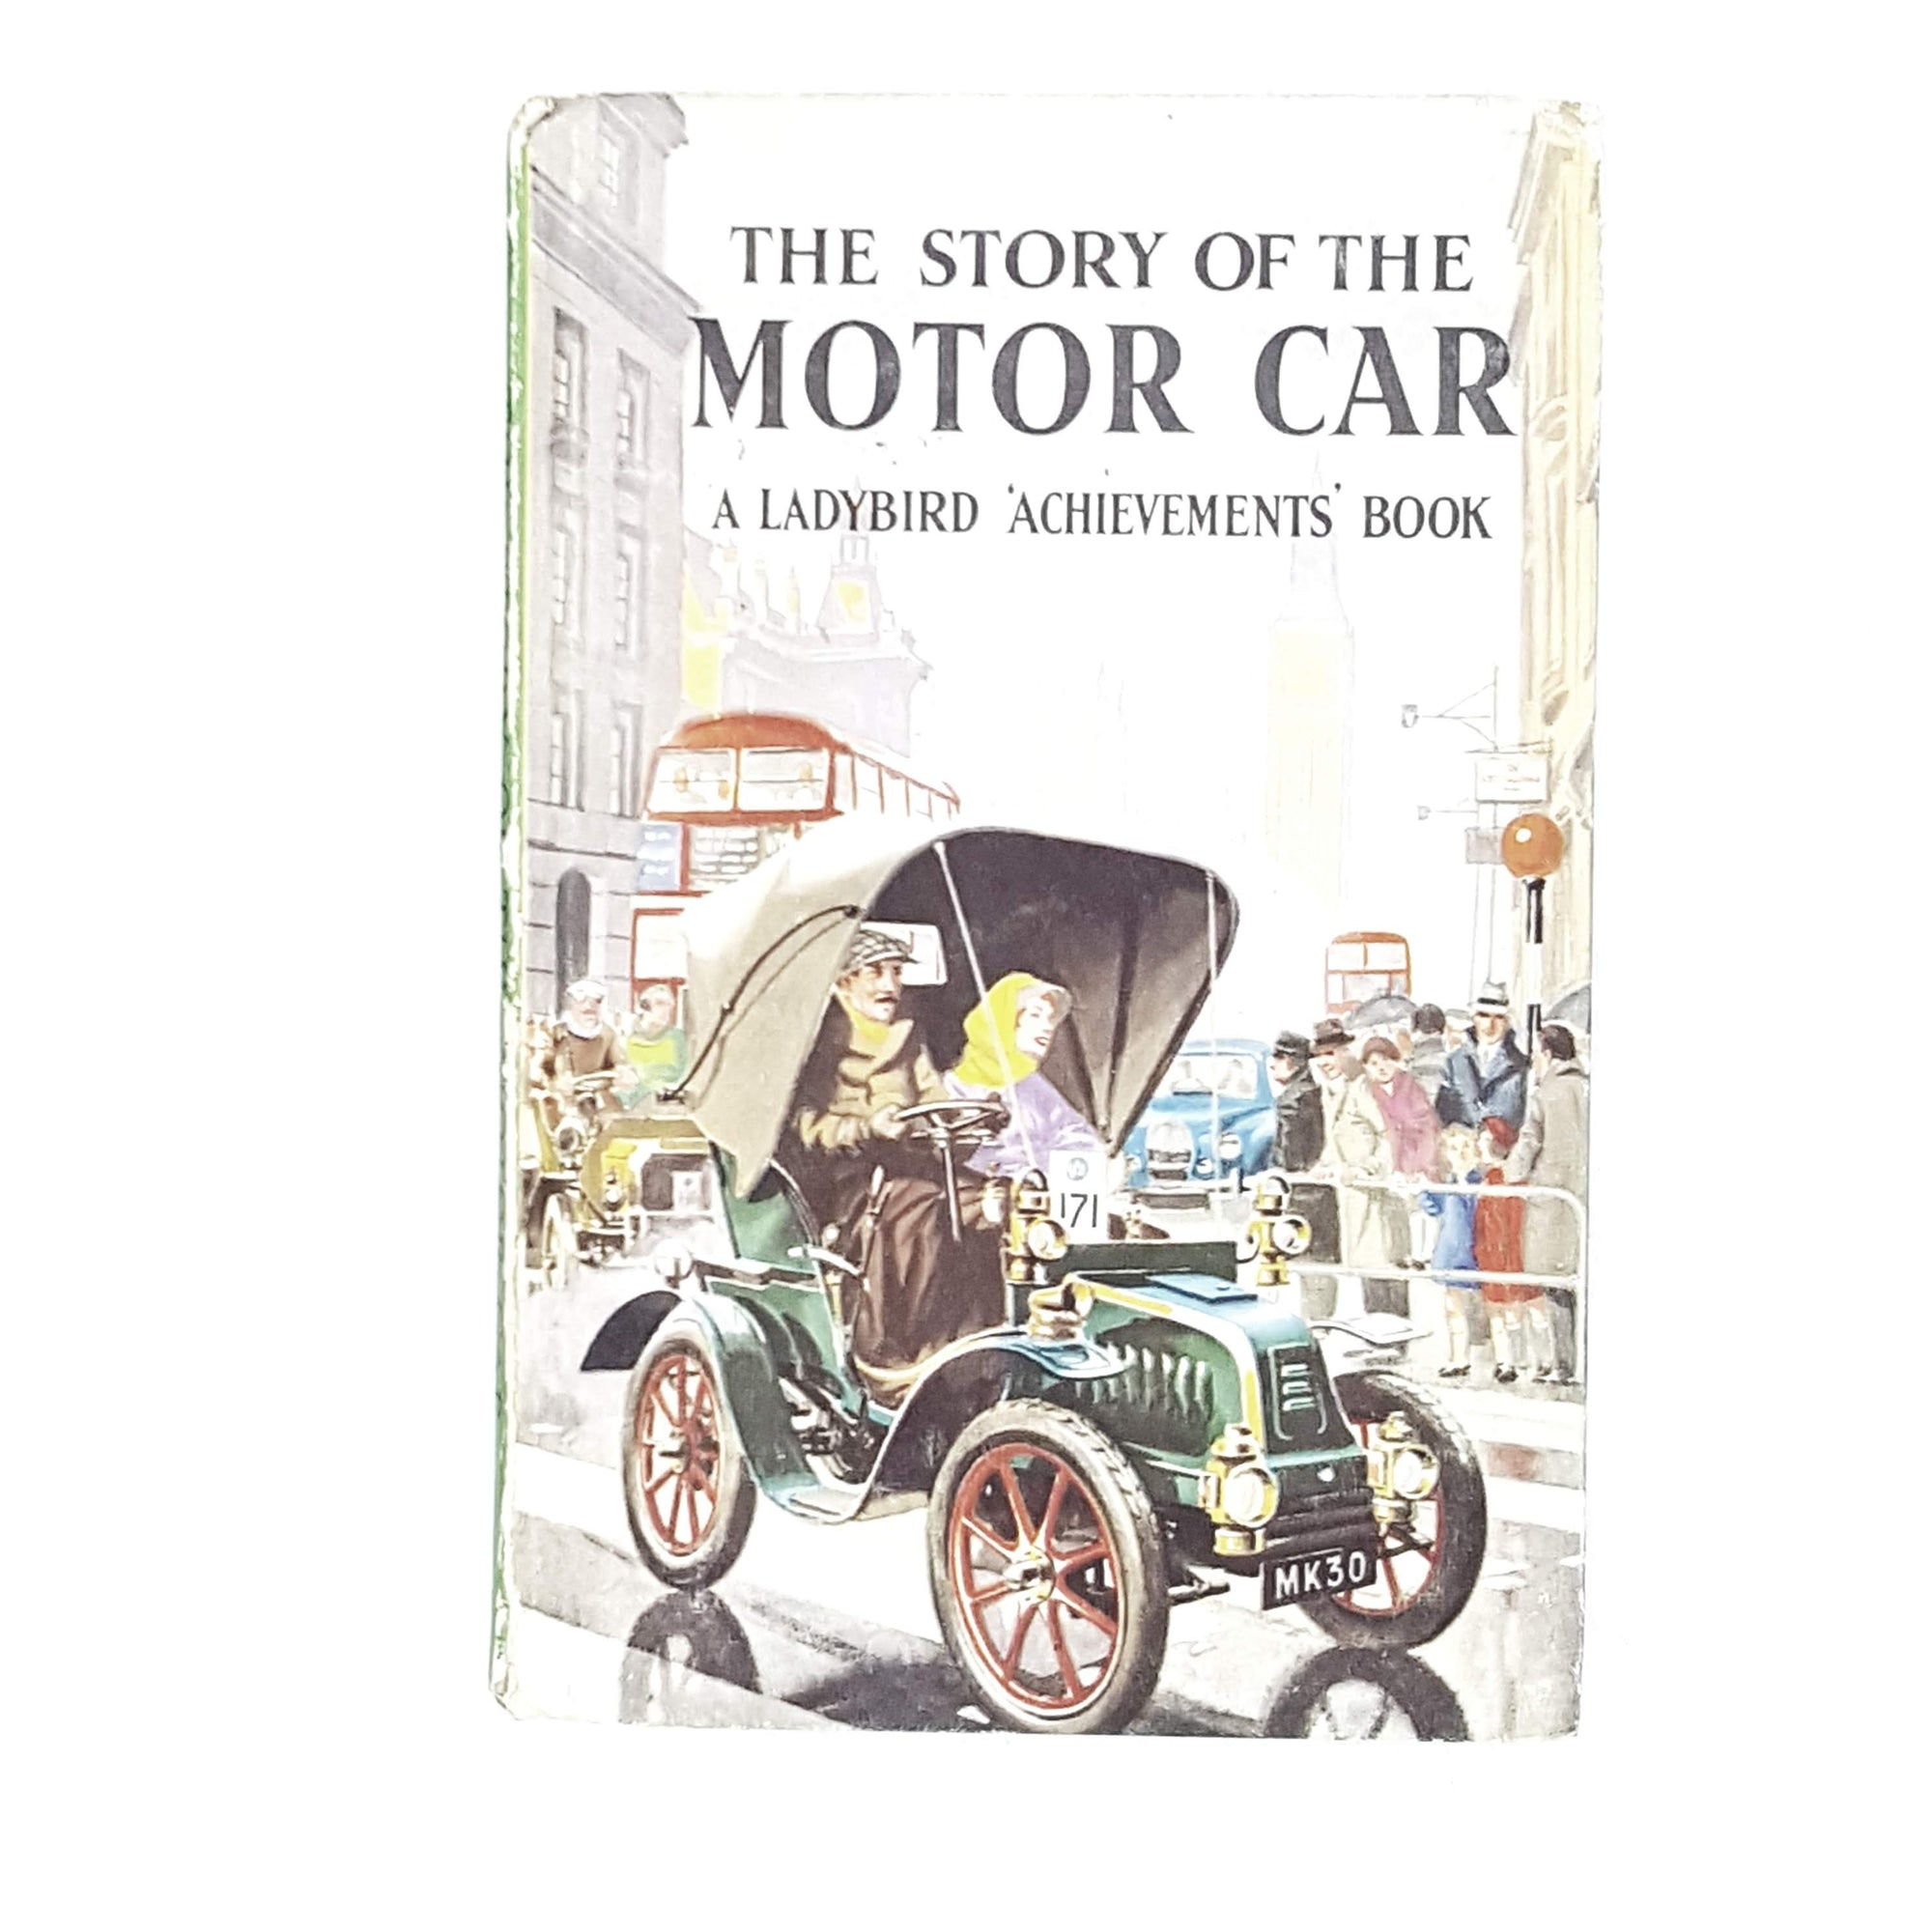 Vintage Ladybird: The Story of the Motor Car 1962